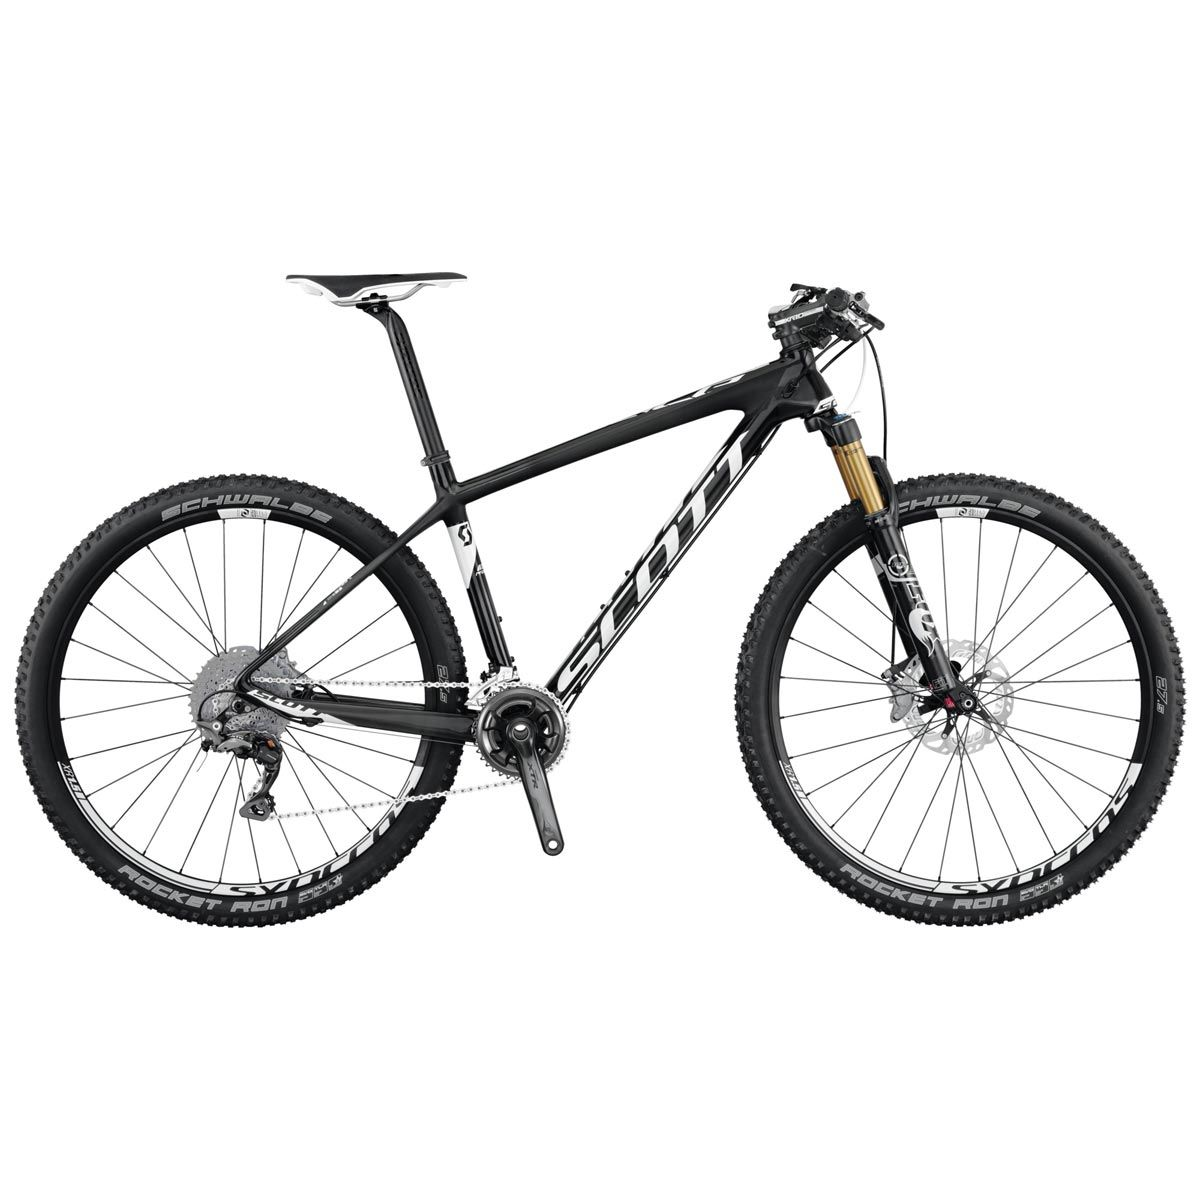 Scott Scale 700 Premium 27.5 Inch 2015 Carbon Hardtail